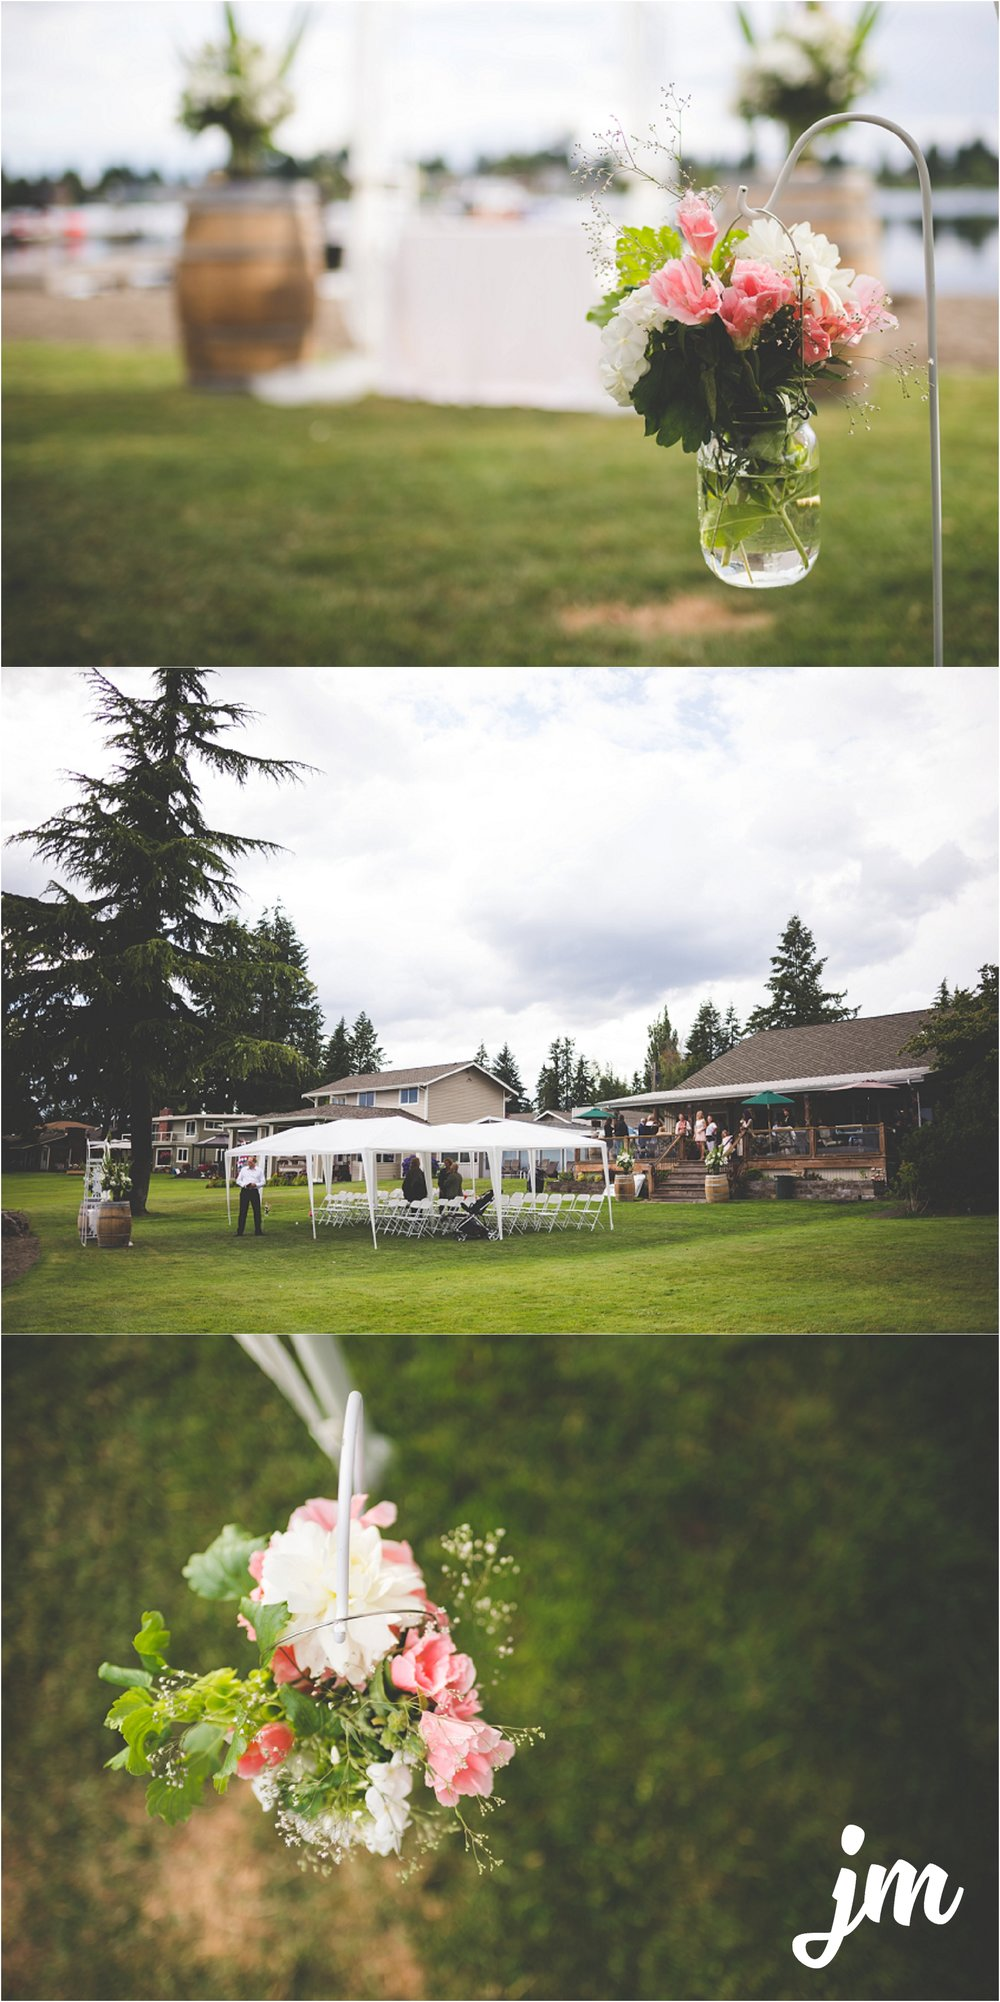 jannicka-mayte-intimate-backyard-lake-wedding-kent-wa-pacific-northwest-wedding-photographer_0038.jpg